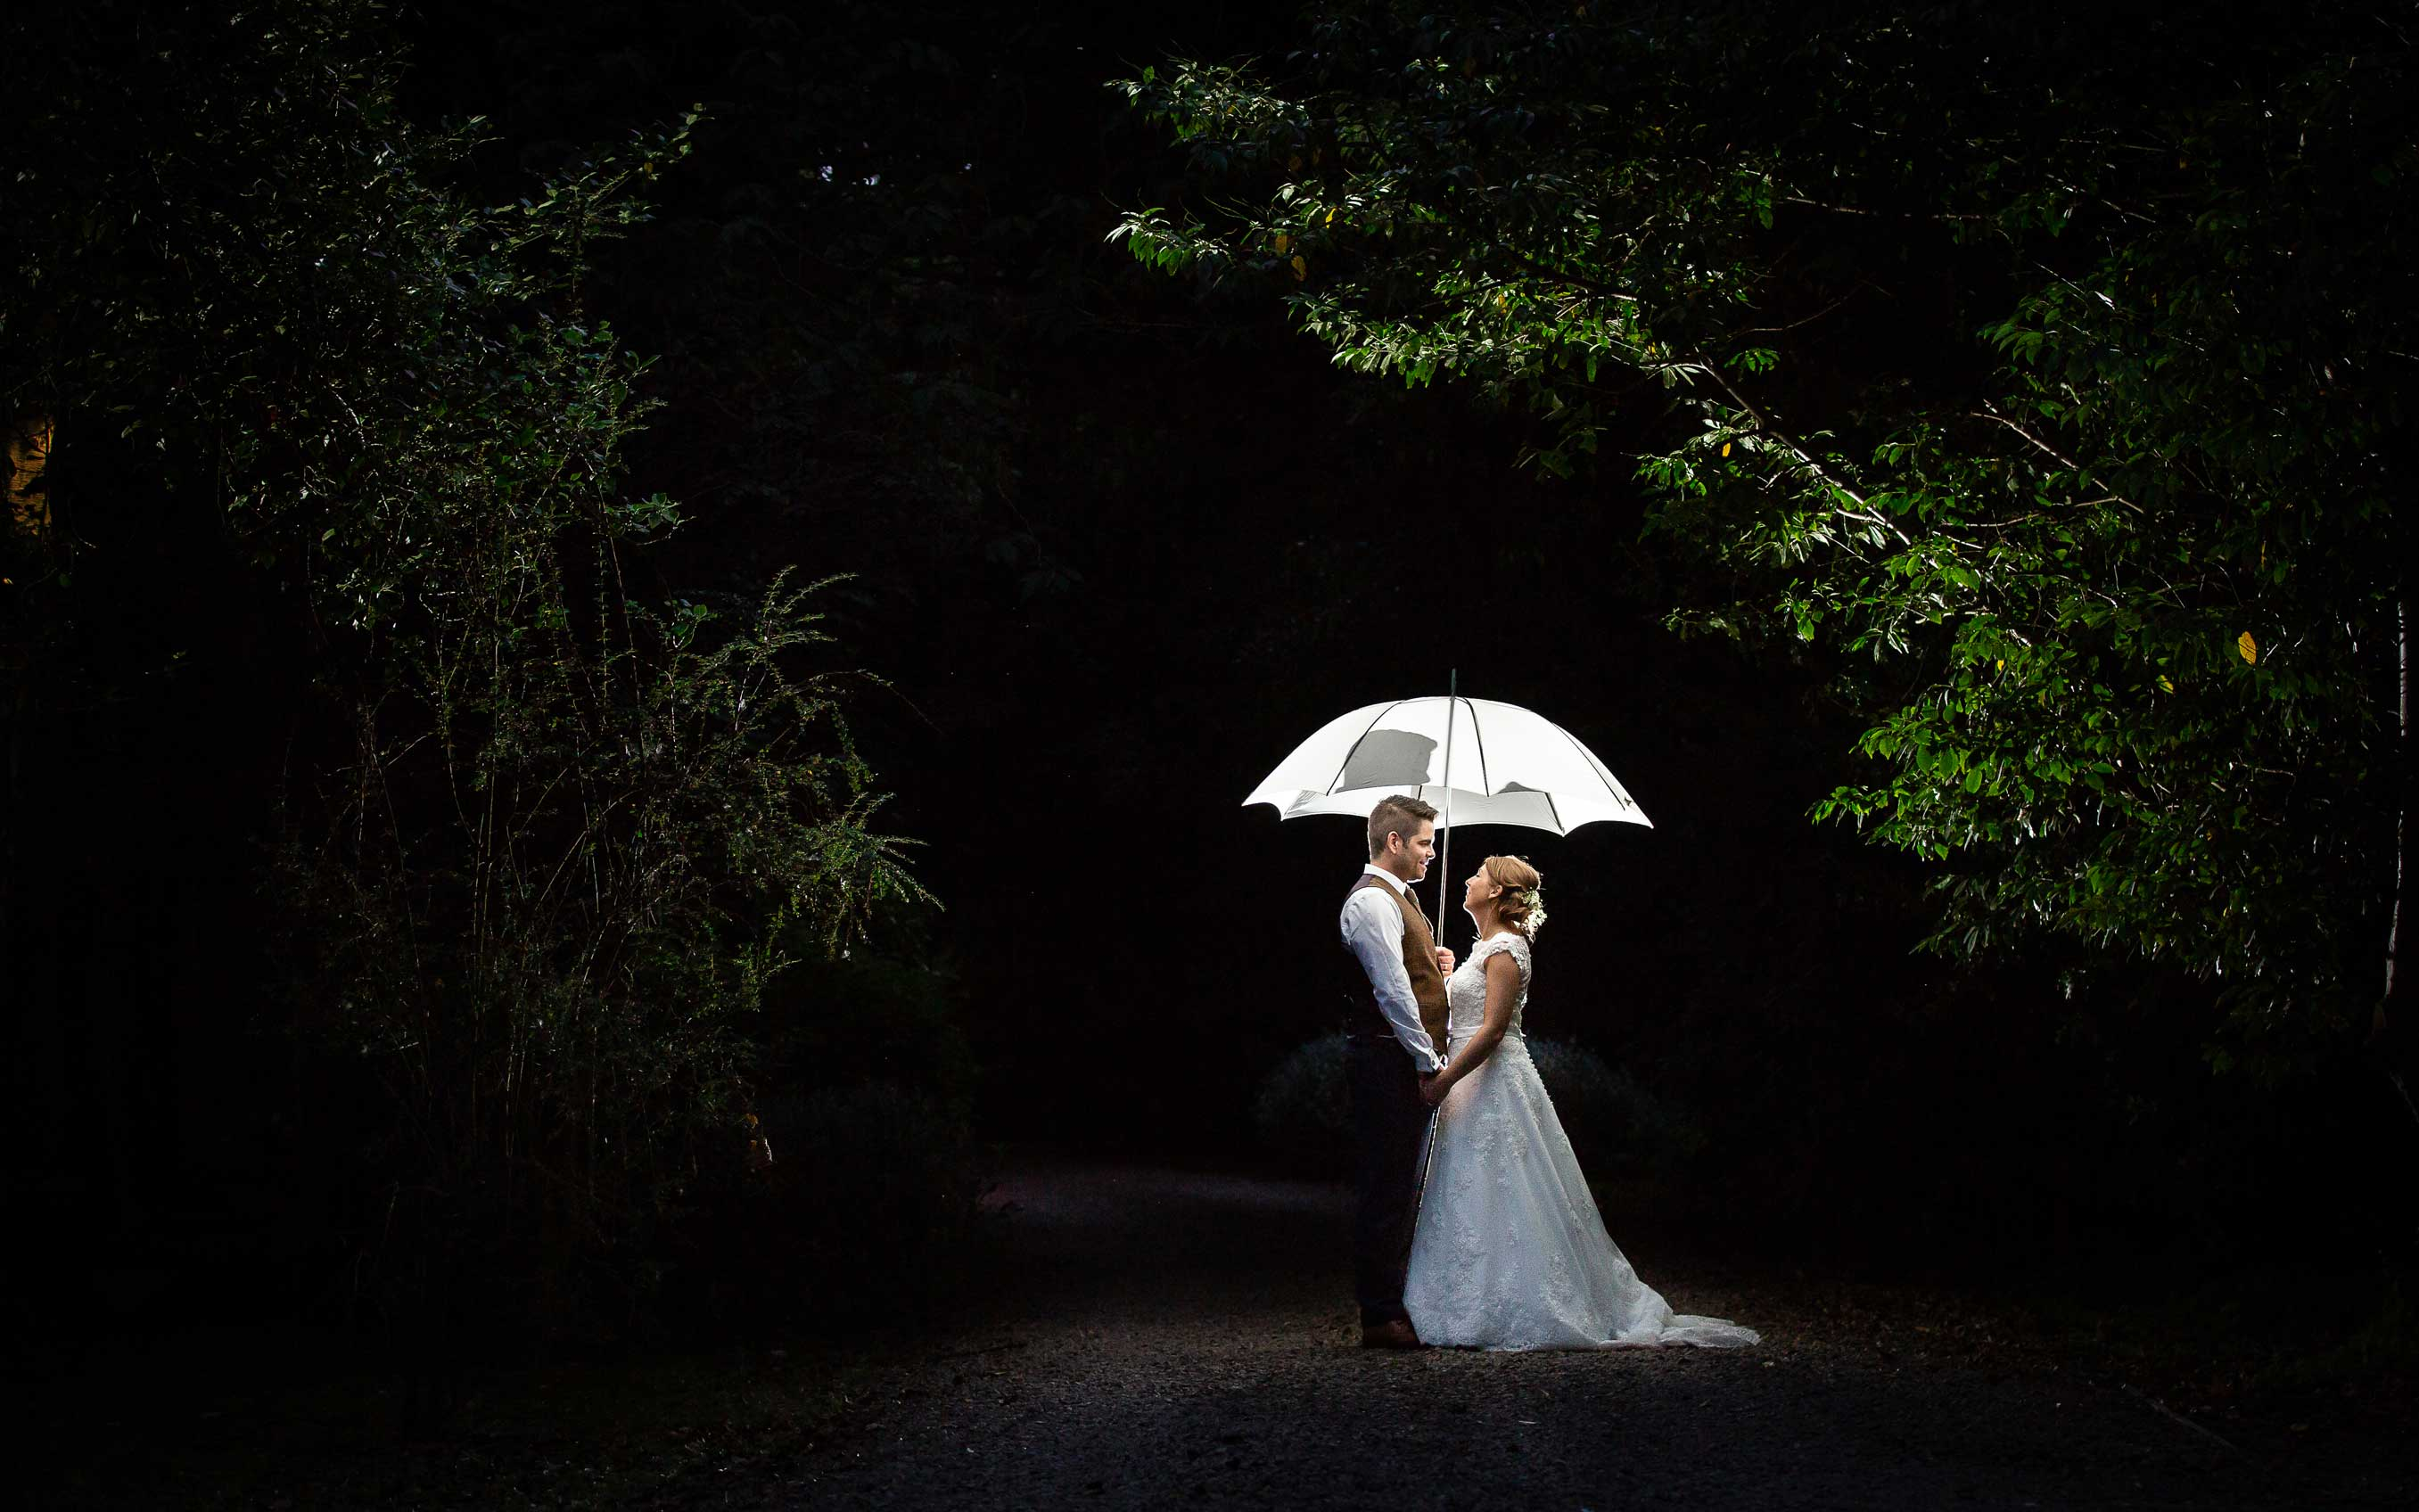 Bride and groom standing under brolly in the dark